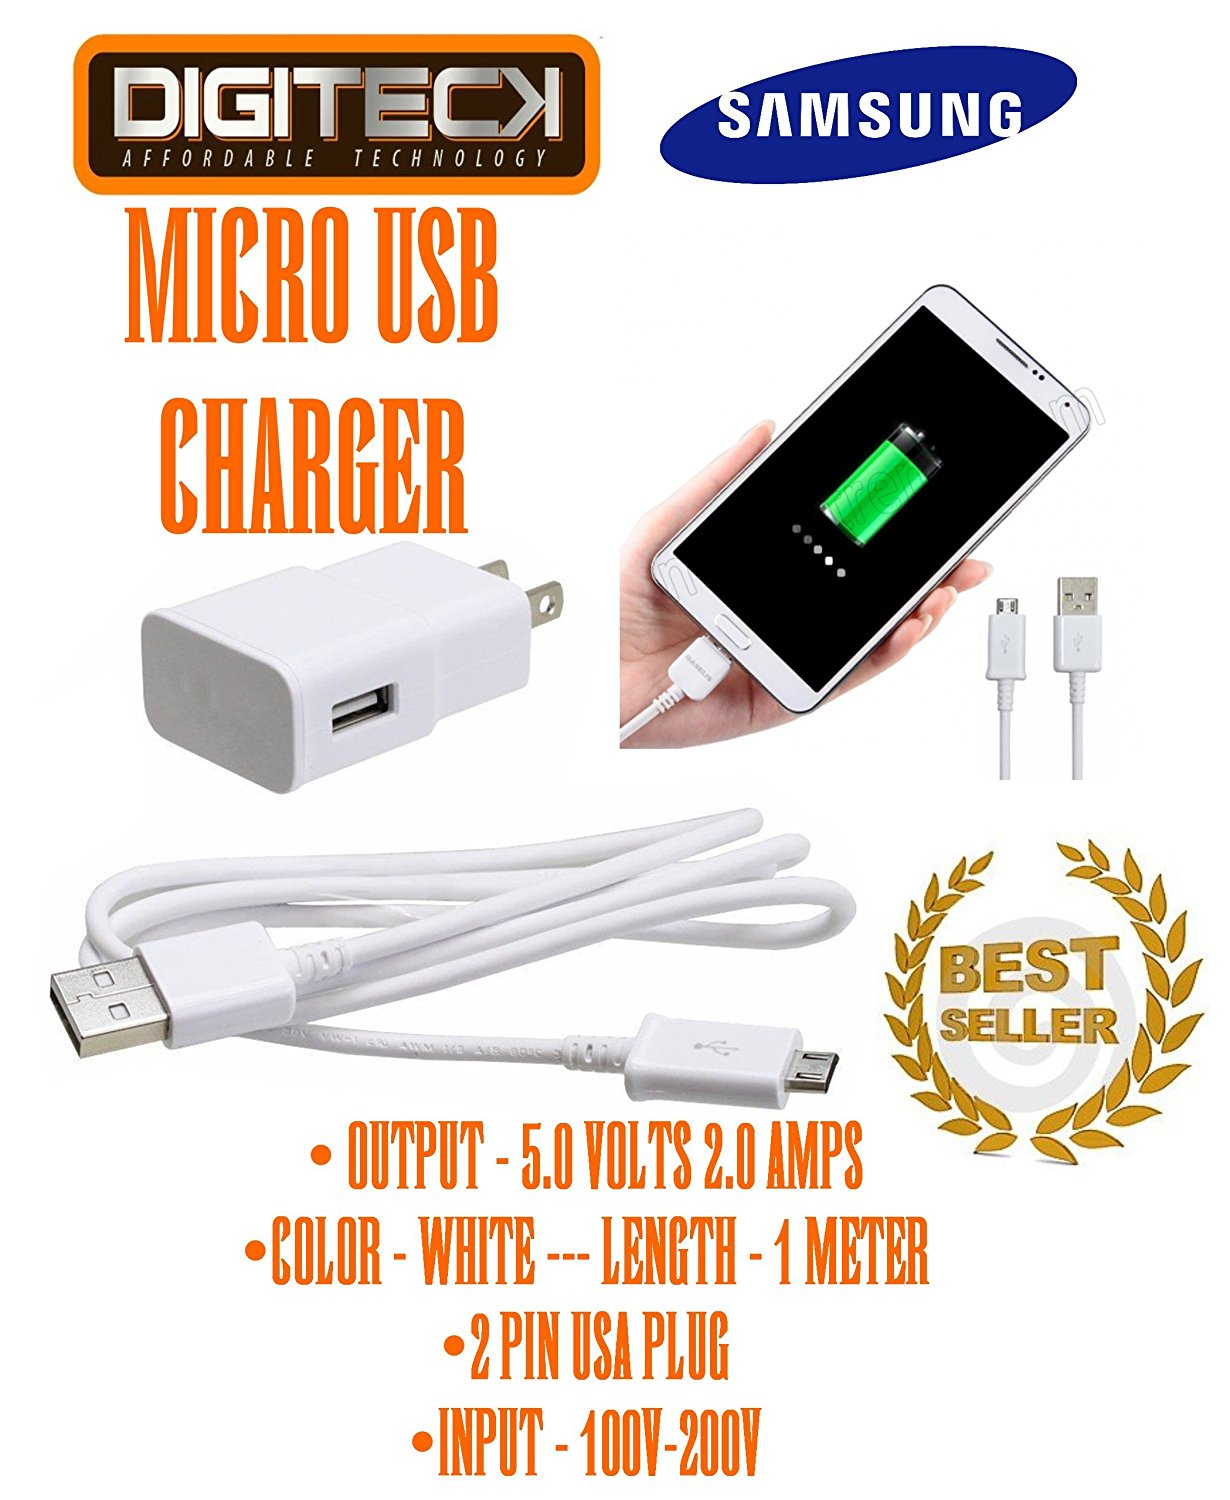 SAMSUNG GALAXY 2.0 MICRO USB WALL CHARGER 1 METER WHITE USA 2 PIN 5V 2A